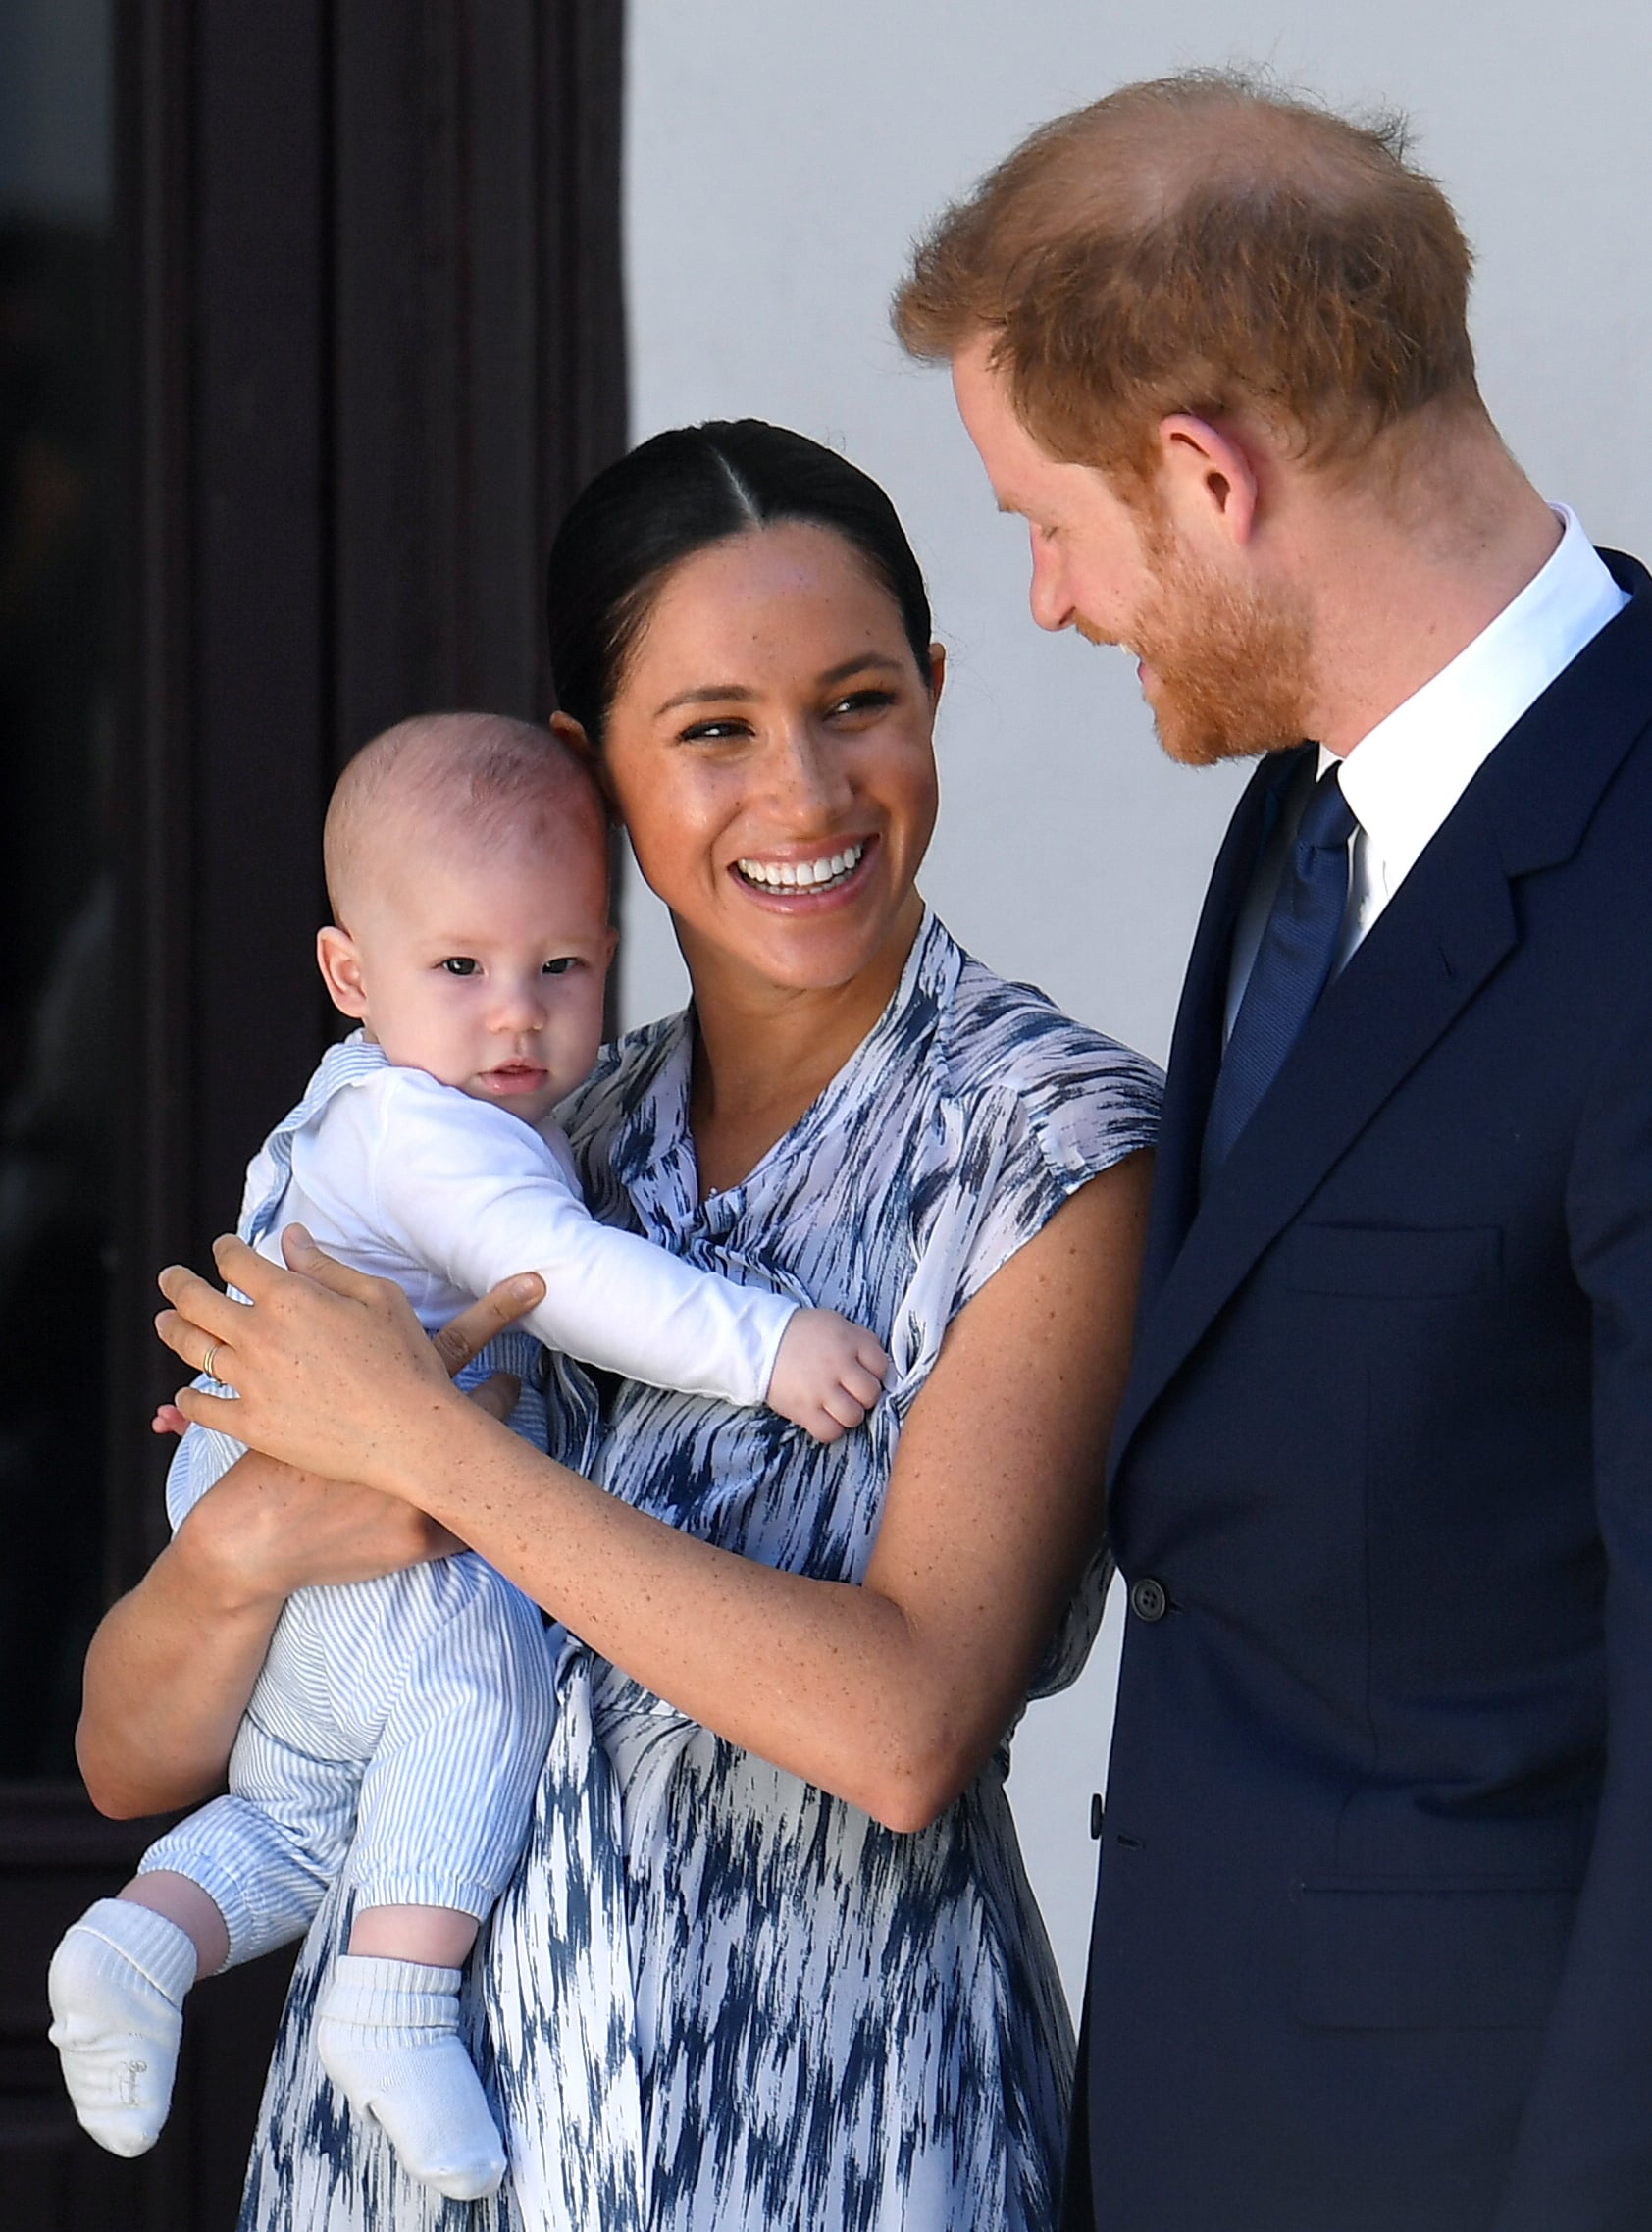 CAPE TOWN, SOUTH AFRICA - SEPTEMBER 25: Prince Harry, Duke of Sussex, Meghan, Duchess of Sussex and their baby son Archie Mountbatten-Windsor meet Archbishop Desmond Tutu at the Desmond & Leah Tutu Legacy Foundation during their royal tour of South Africa on September 25, 2019 in Cape Town, South Africa. (Photo by Toby Melville - Pool/Getty Images)